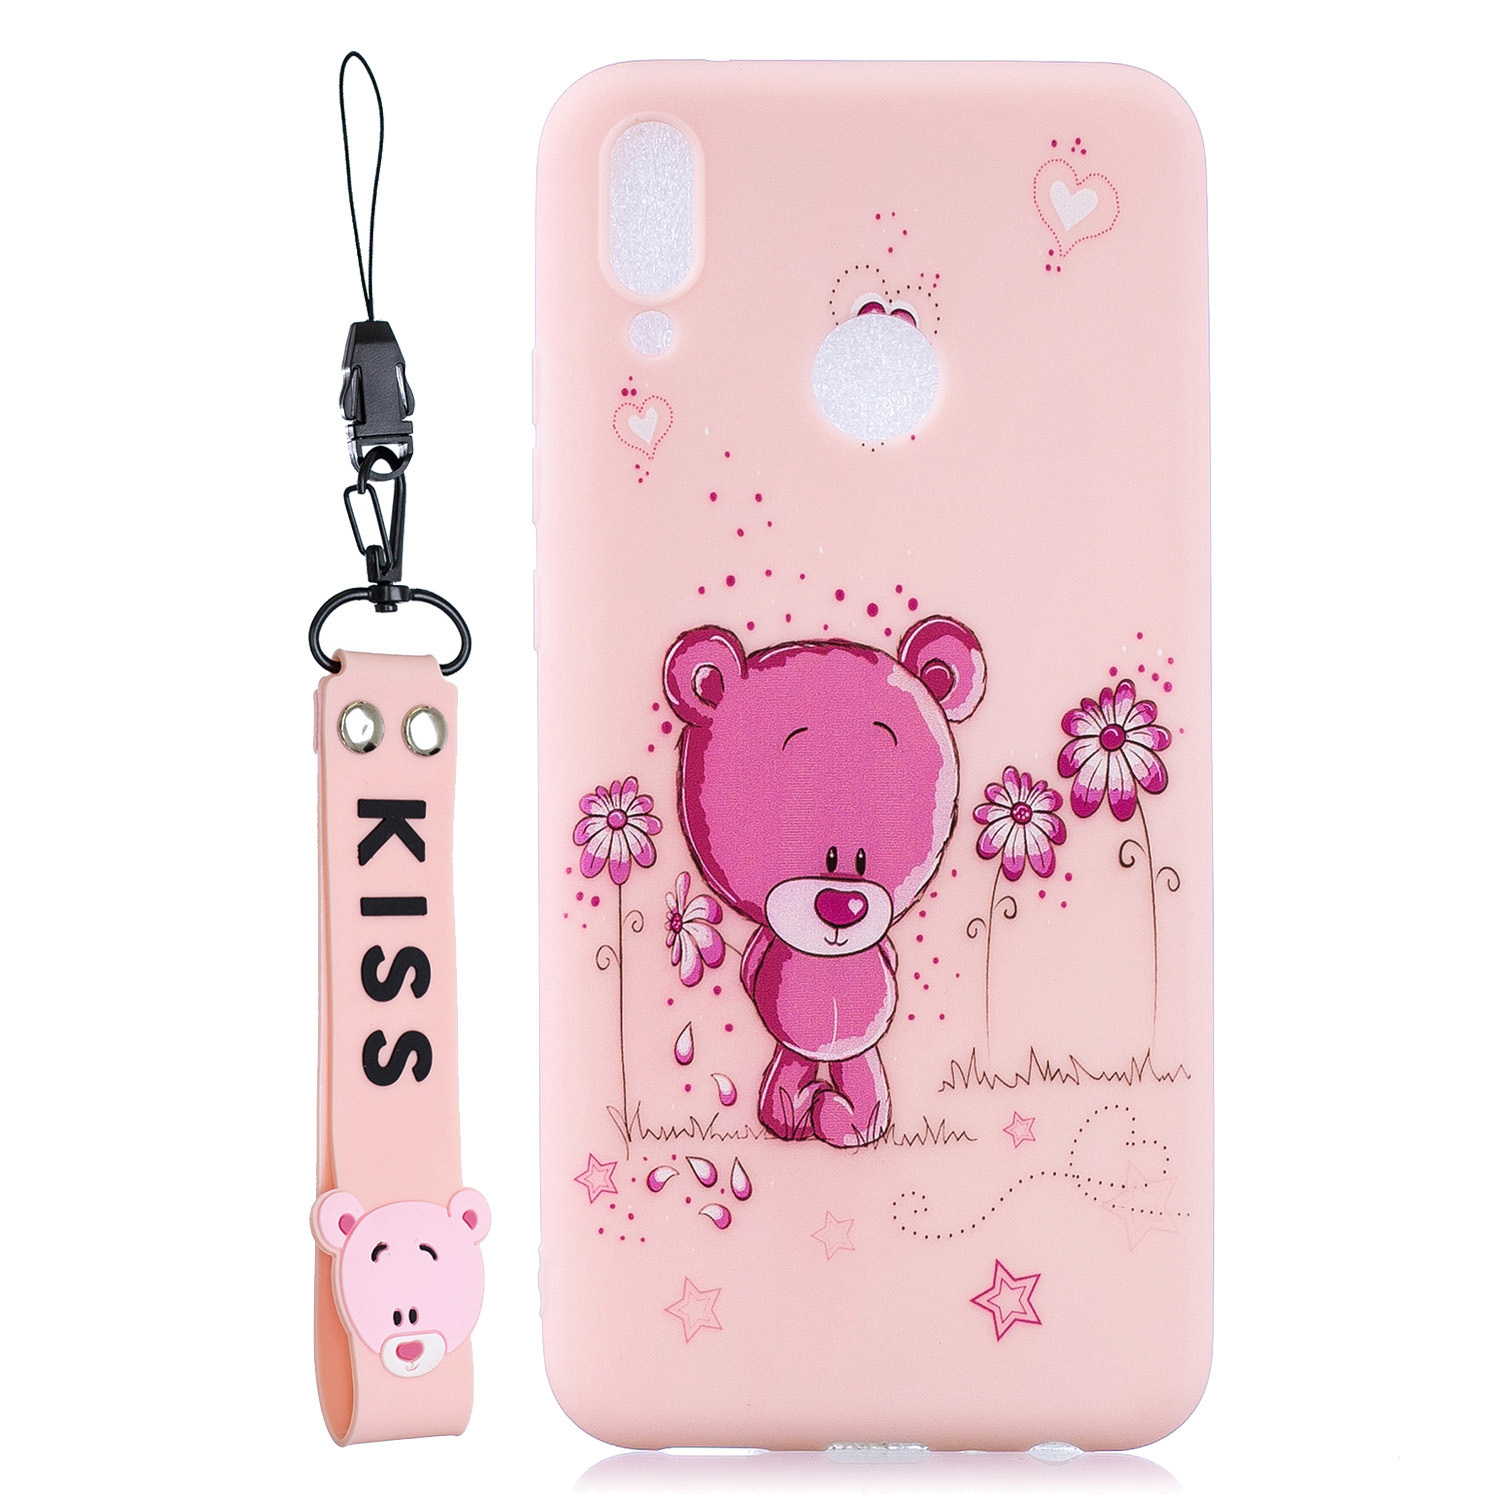 For HUAWEI Y9 2019 Cartoon Lovely Coloured Painted Soft TPU Back Cover Non-slip Shockproof Full Protective Case with Lanyard Light pink